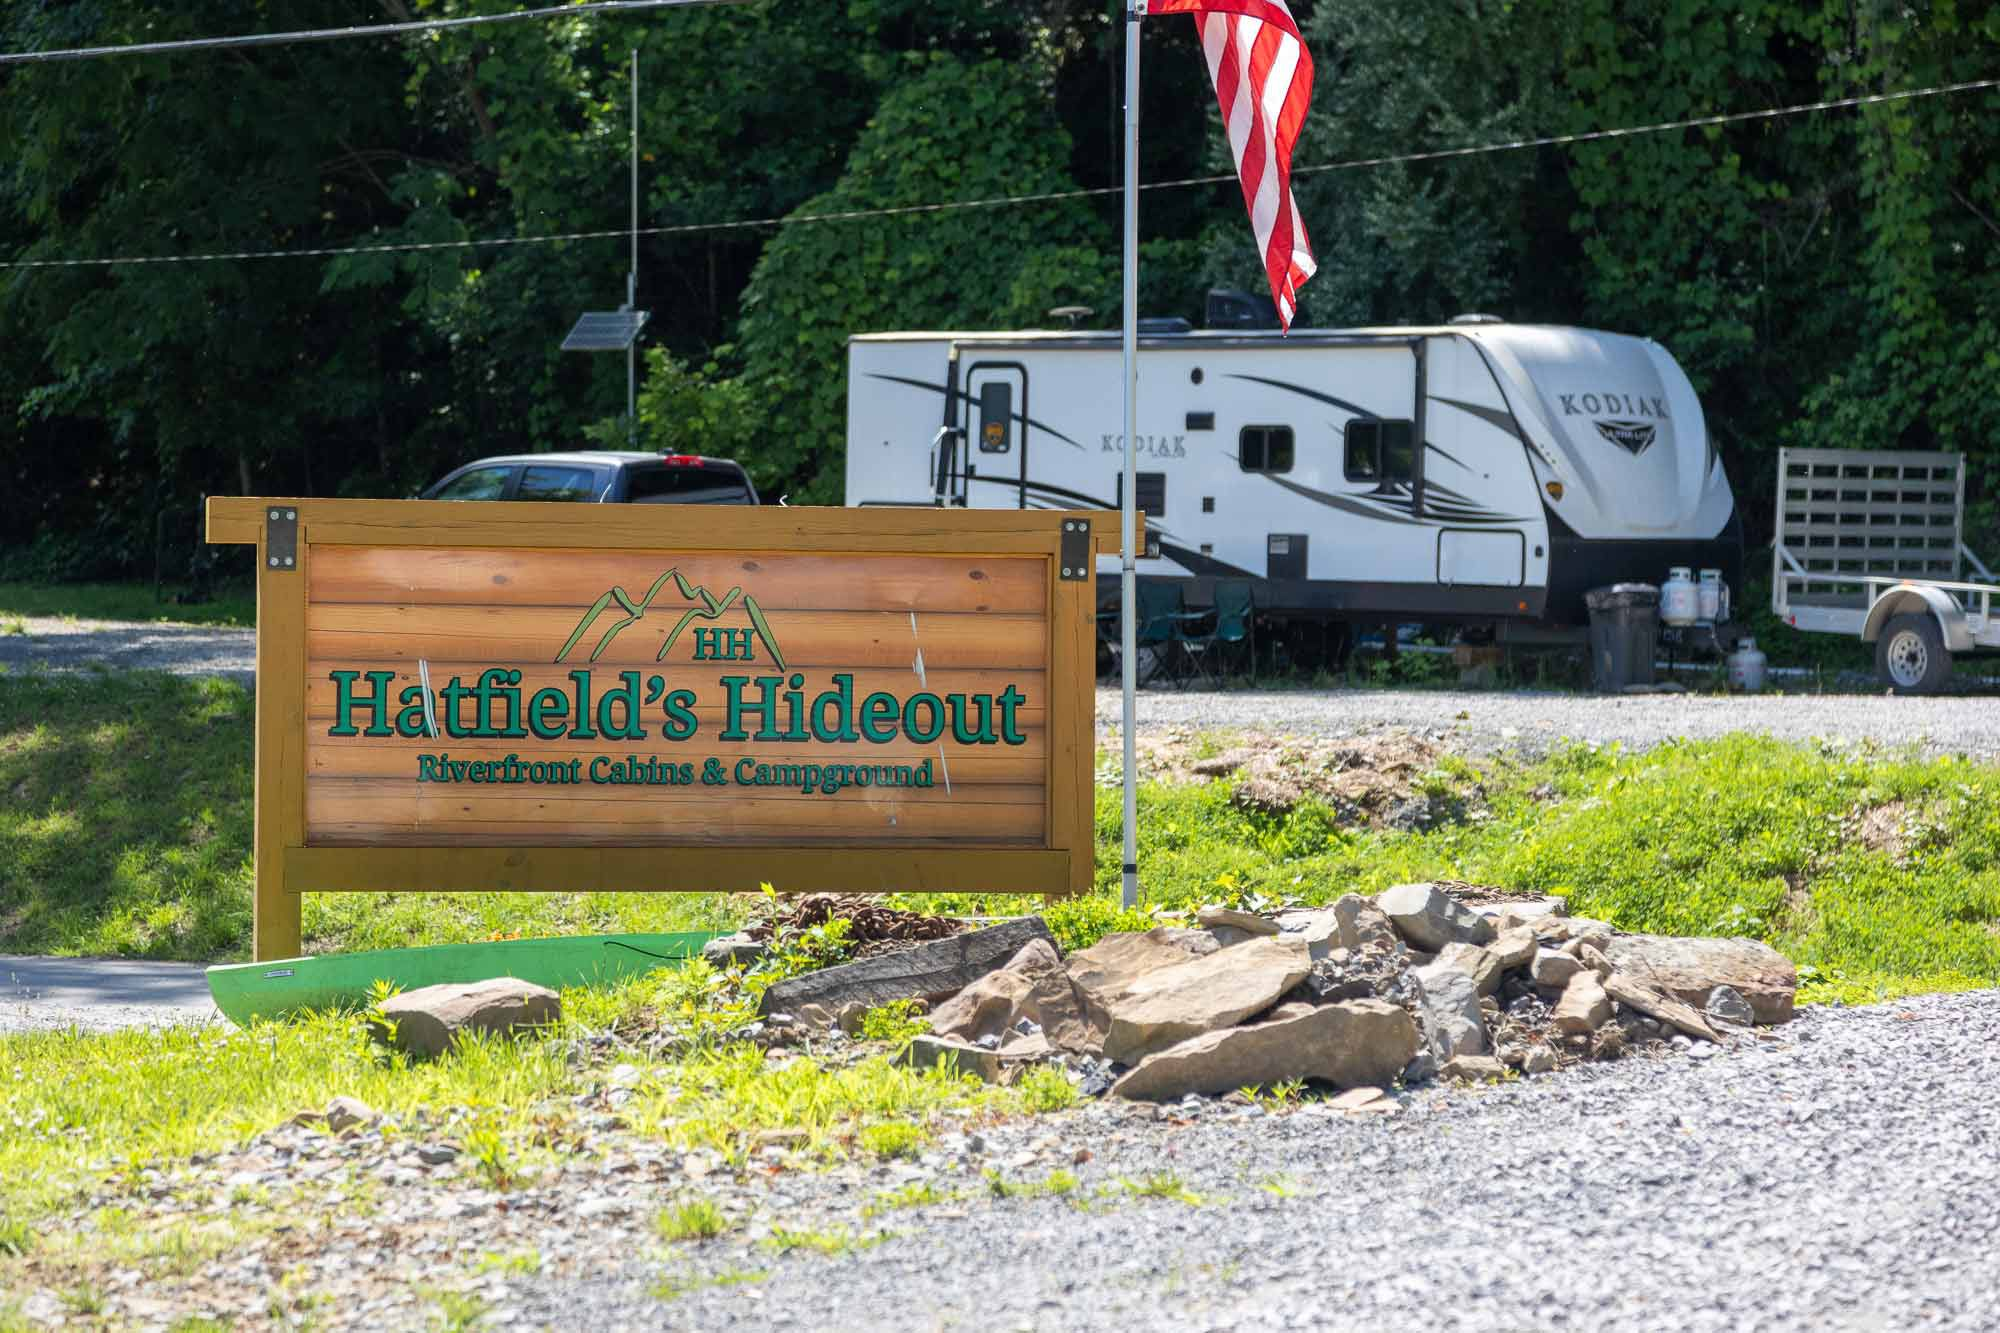 Hatfield's Hideout is located just outside of McCarr, Kentucky, along the banks of the Tug Fork River.